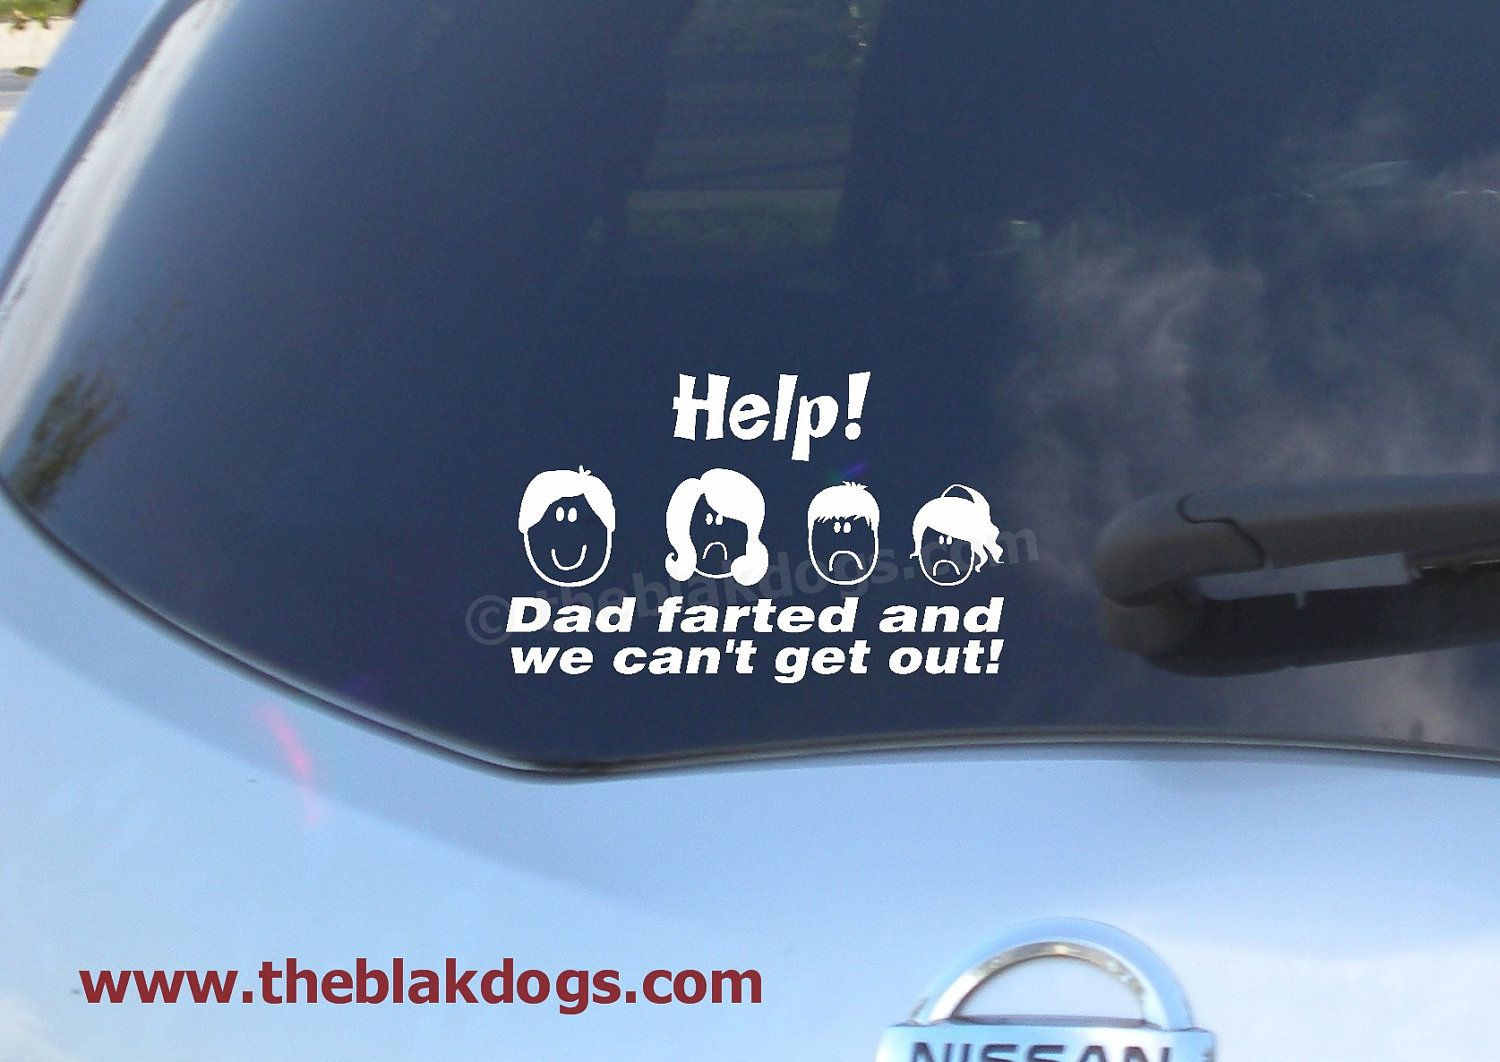 Help Dad Farted Vinyl Sticker Car Decal Via Etsy - Family car sticker decalsbest silhouette for the car images on pinterest family car